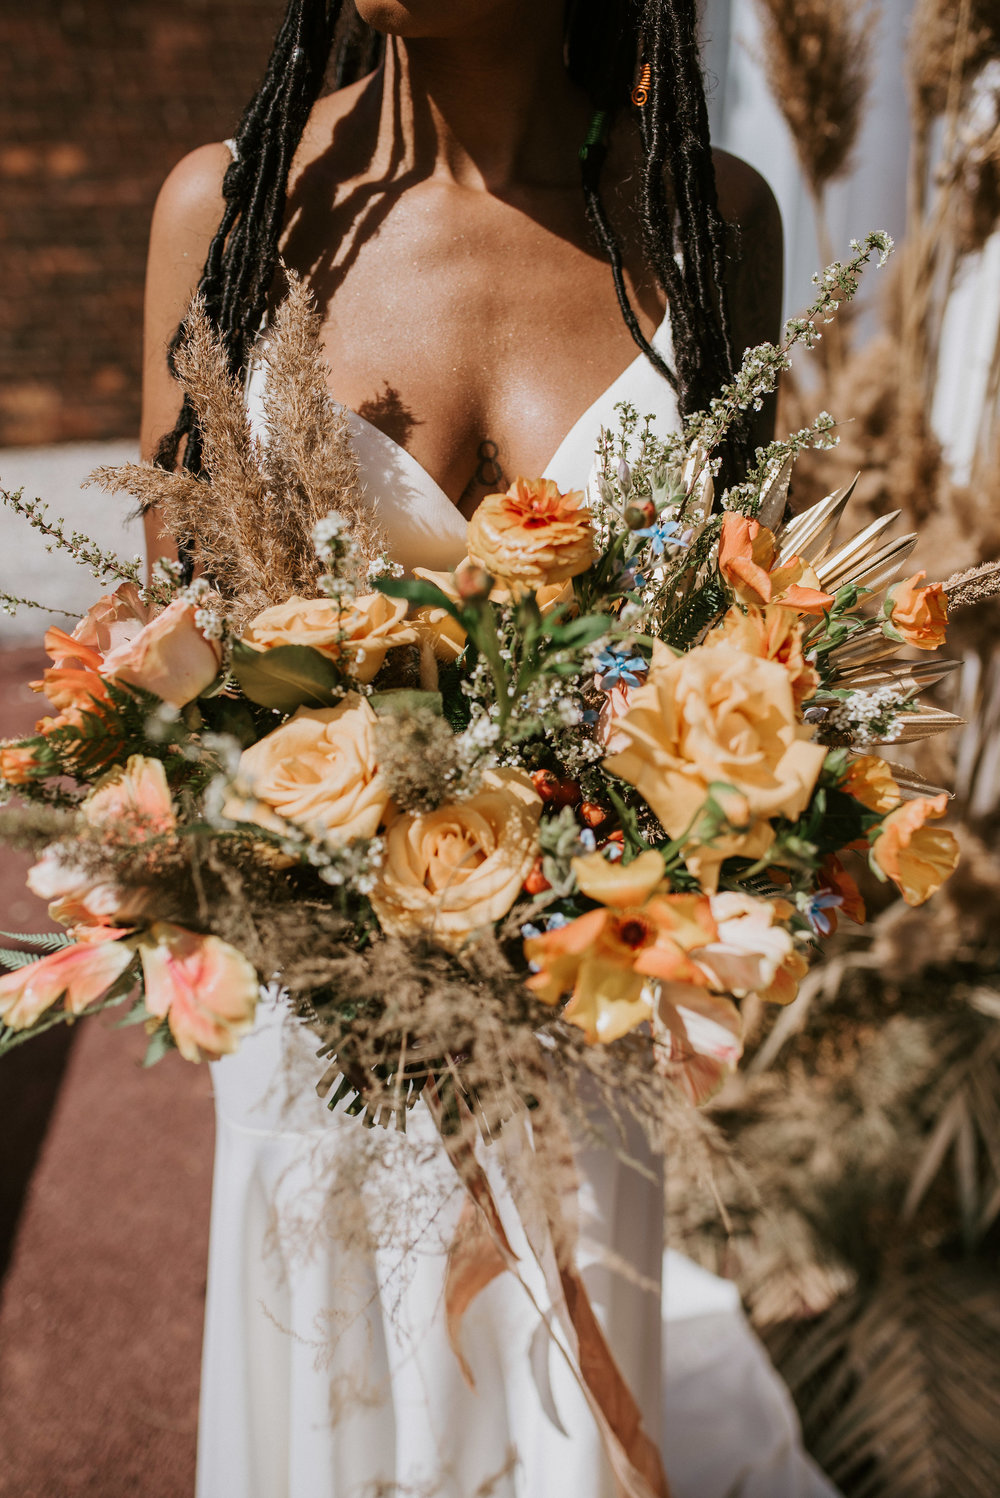 Nadia in her Detroit Bridal House gown holding her sprawling bridal bouquet. Features    rust    &    sand    colored silk ribbons by Rosemarine Textiles.